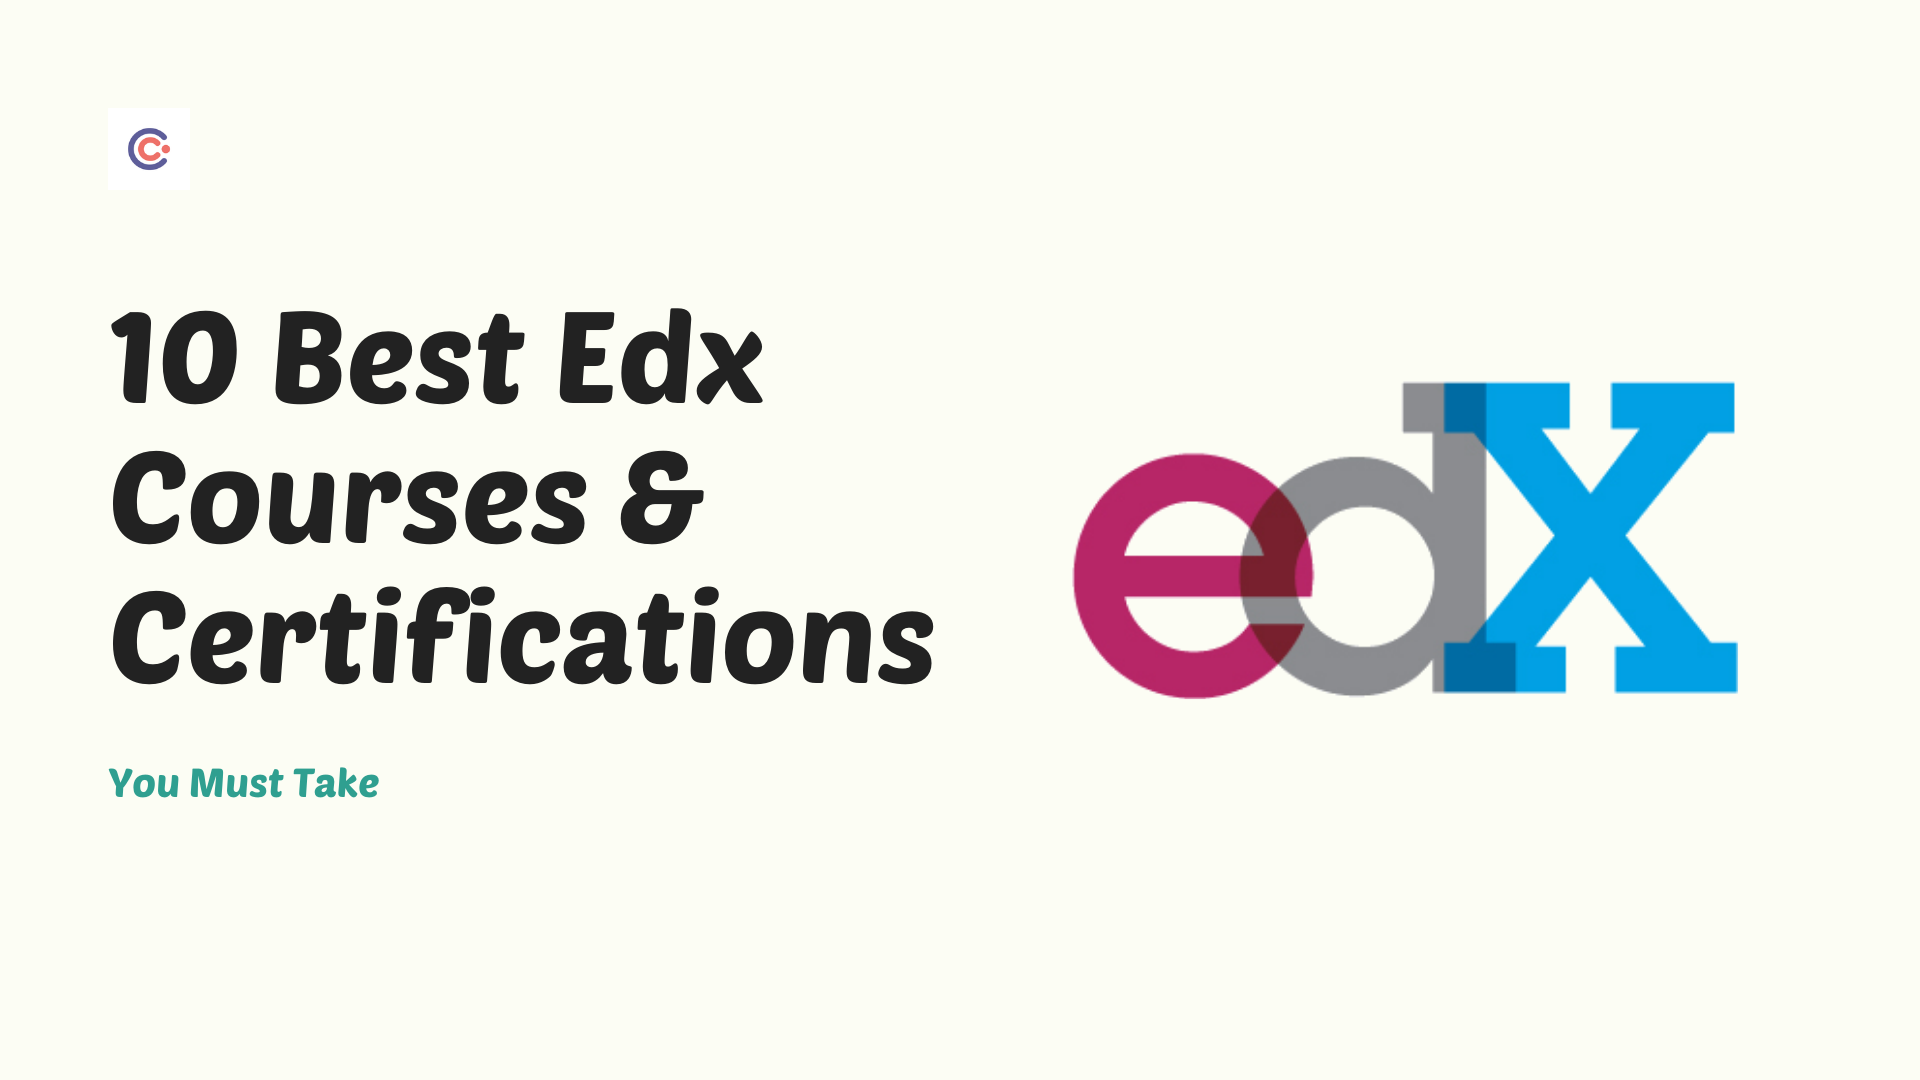 10 Best Edx Courses & Certifications You Must Take in 2021